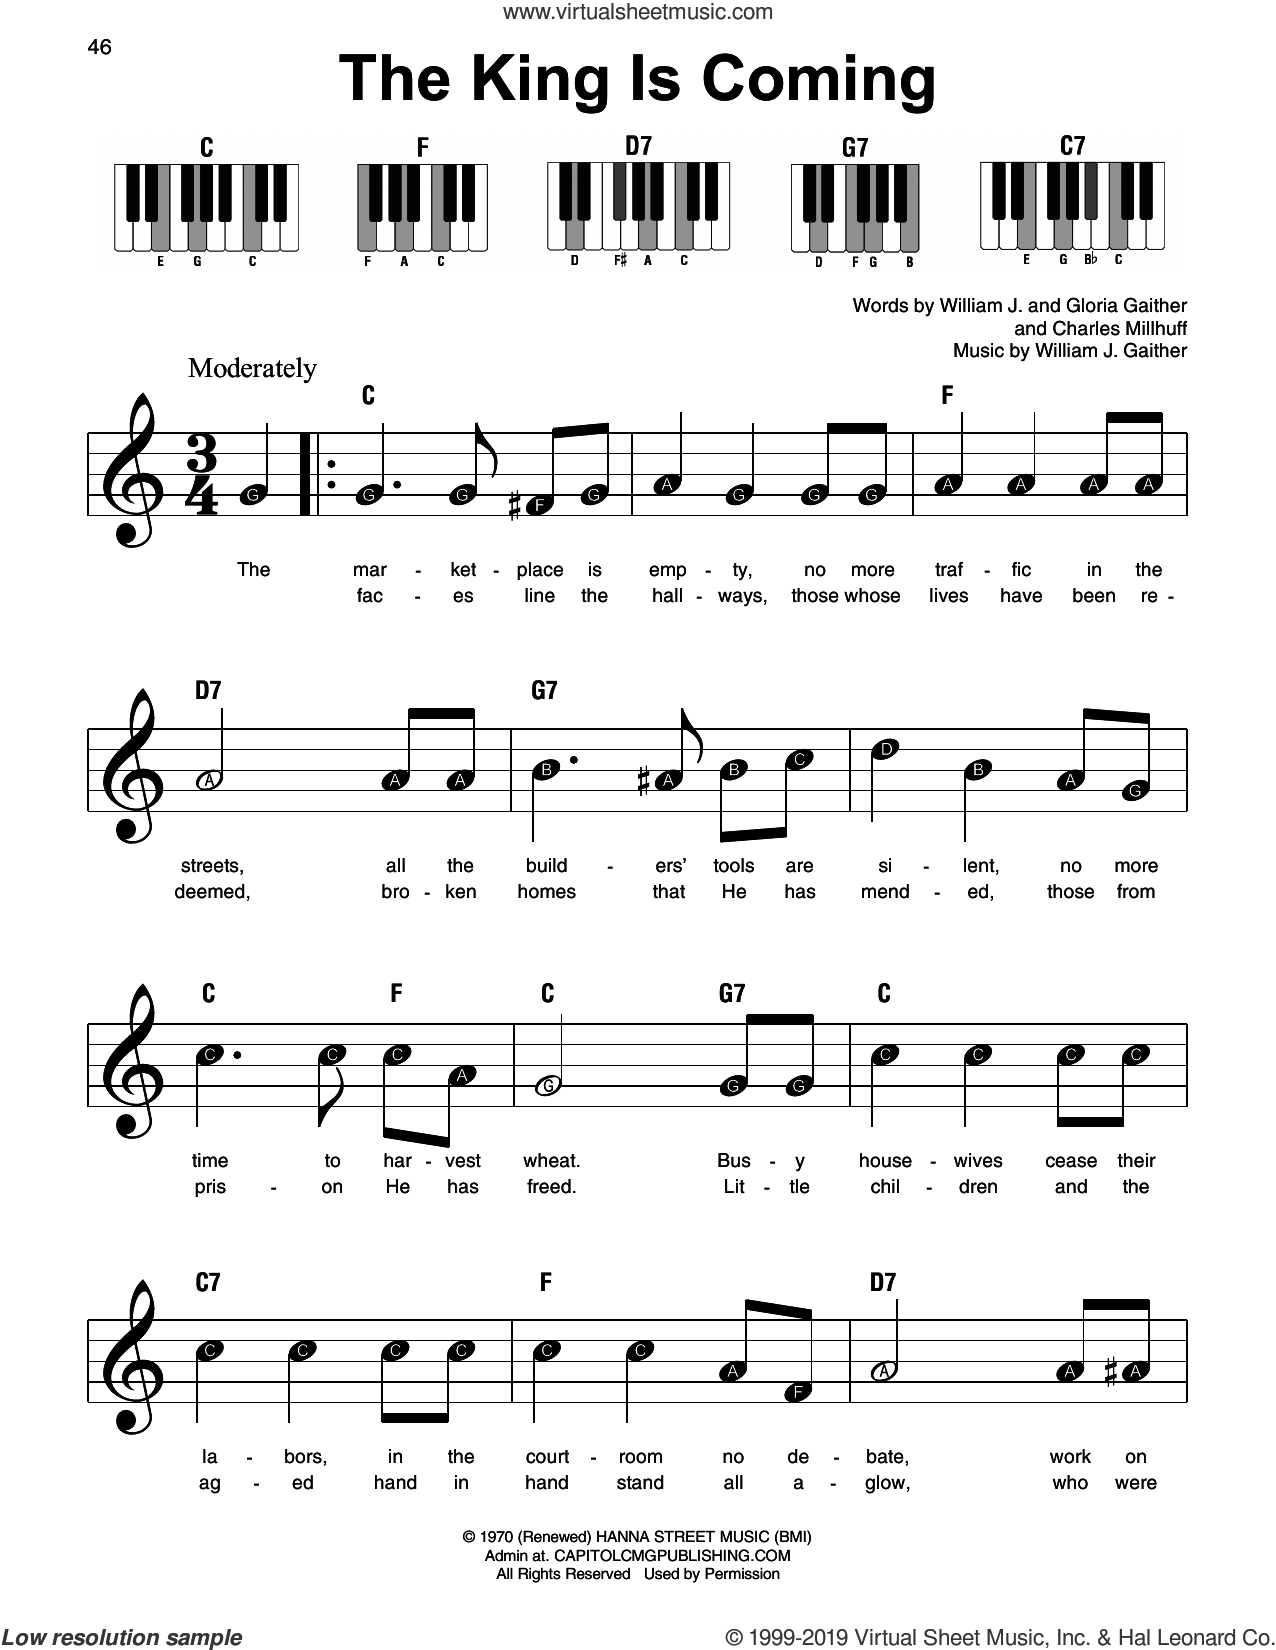 The King Is Coming sheet music for piano solo by Charles Millhuff, Gloria Gaither and William J. Gaither, beginner skill level